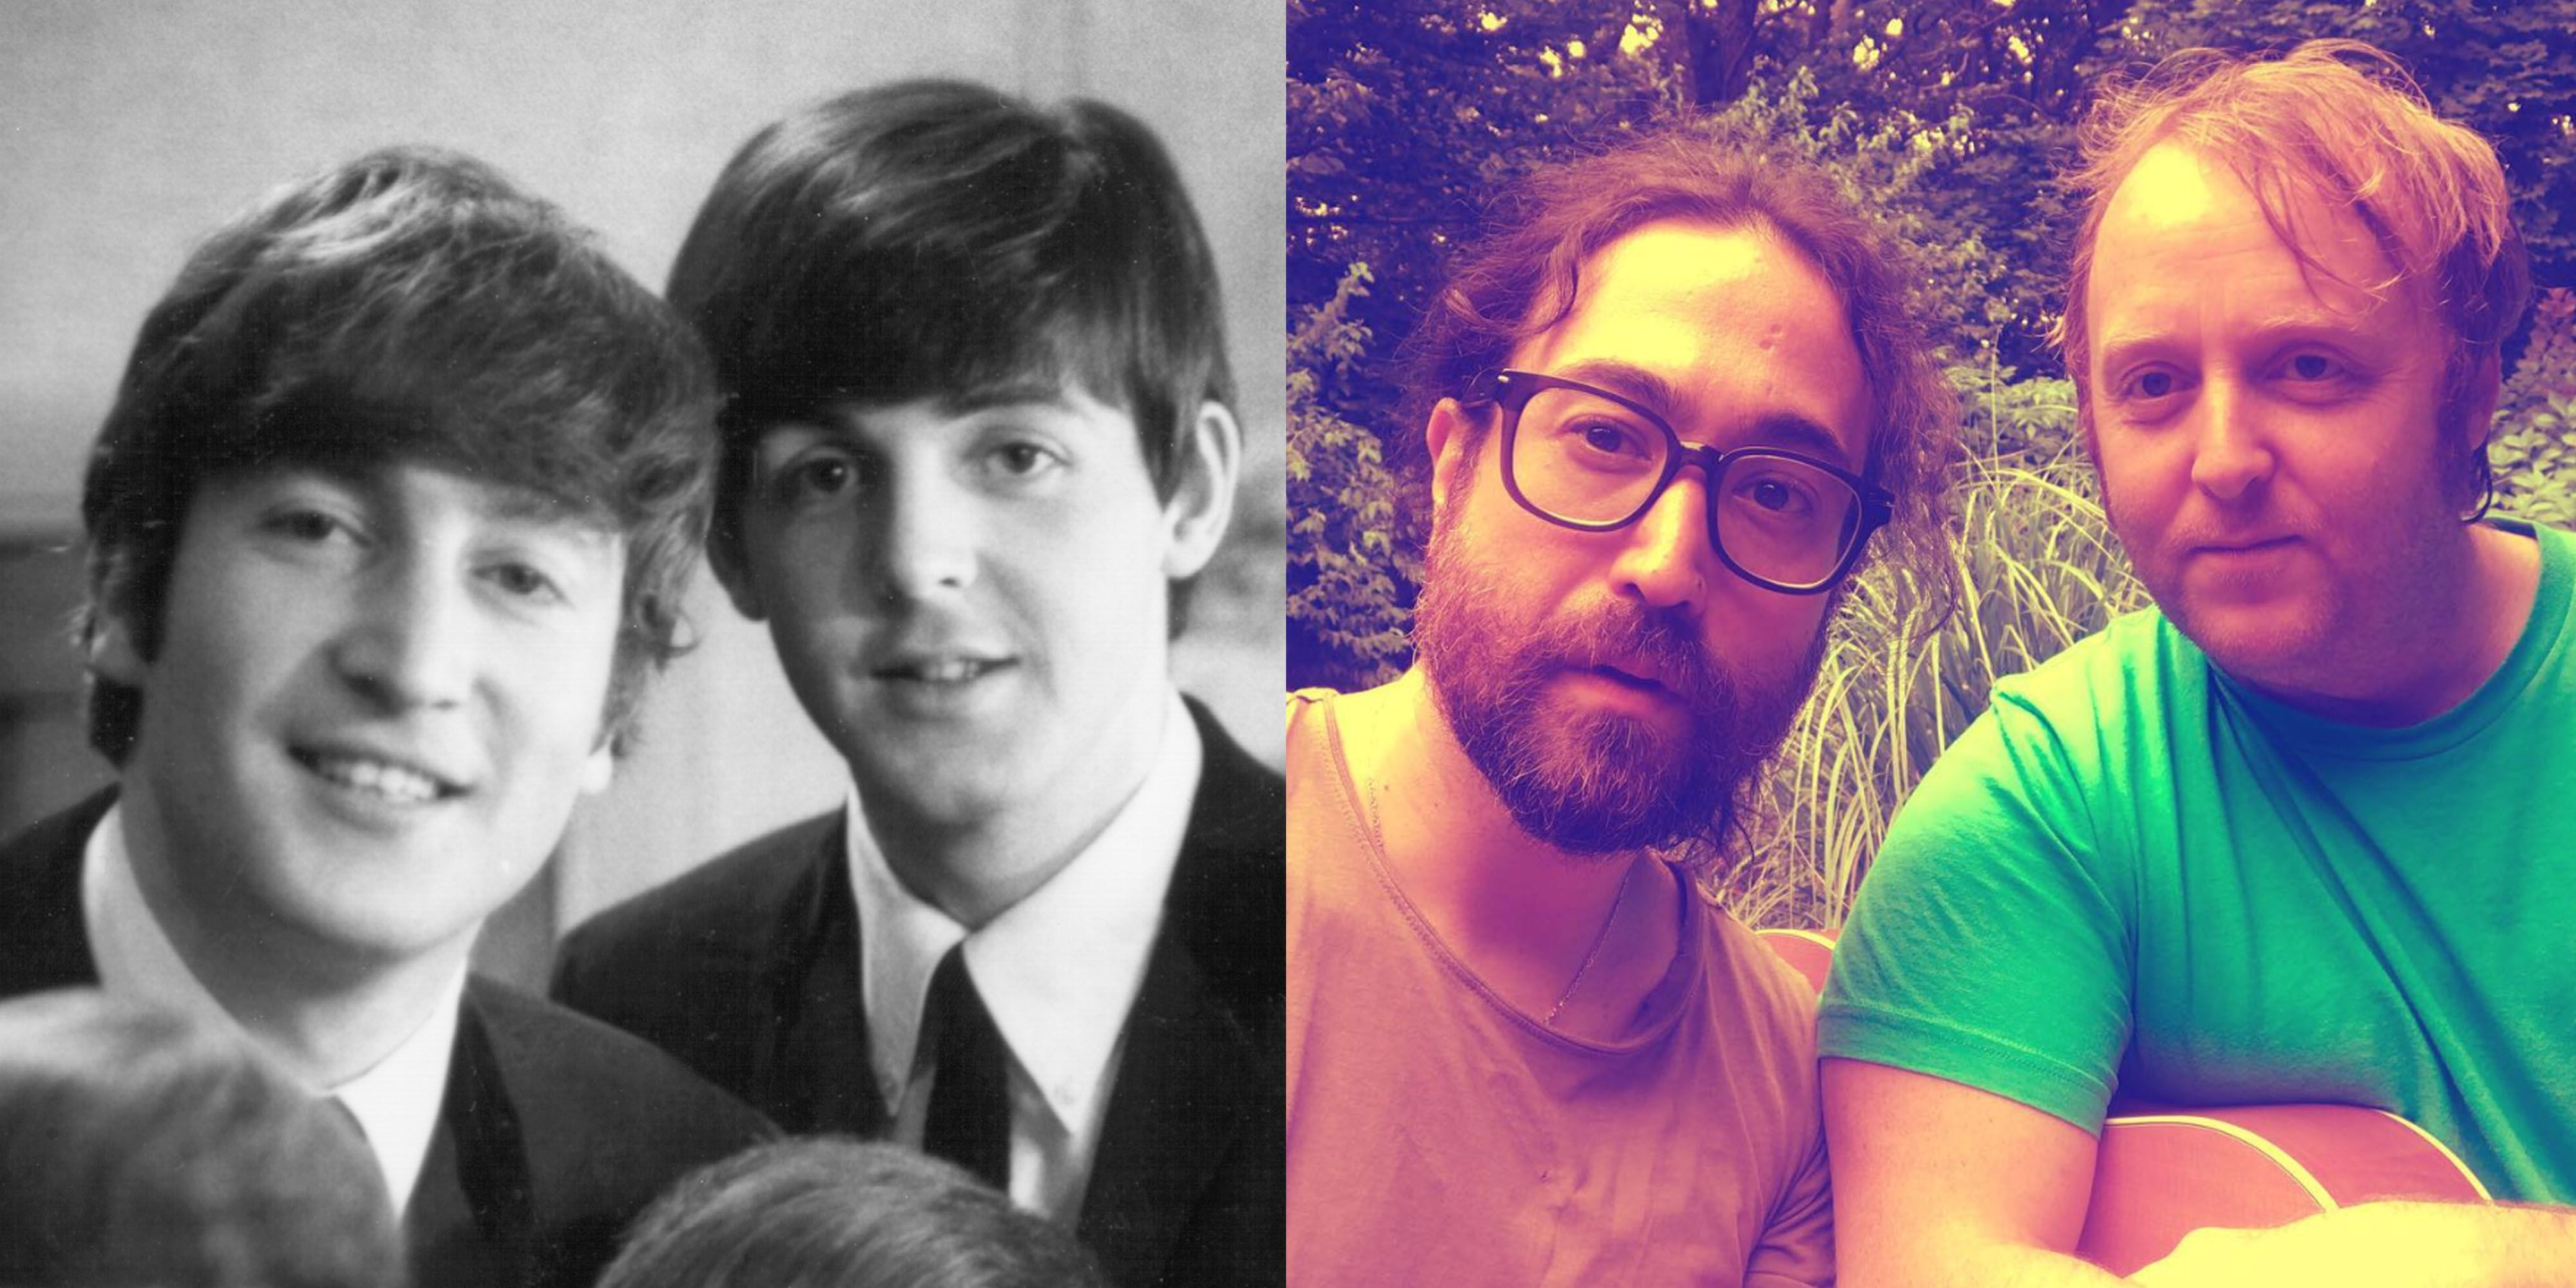 John Lennon And Paul McCartneys Sons Are Perfect Copies Of Their Dads In This New Photo